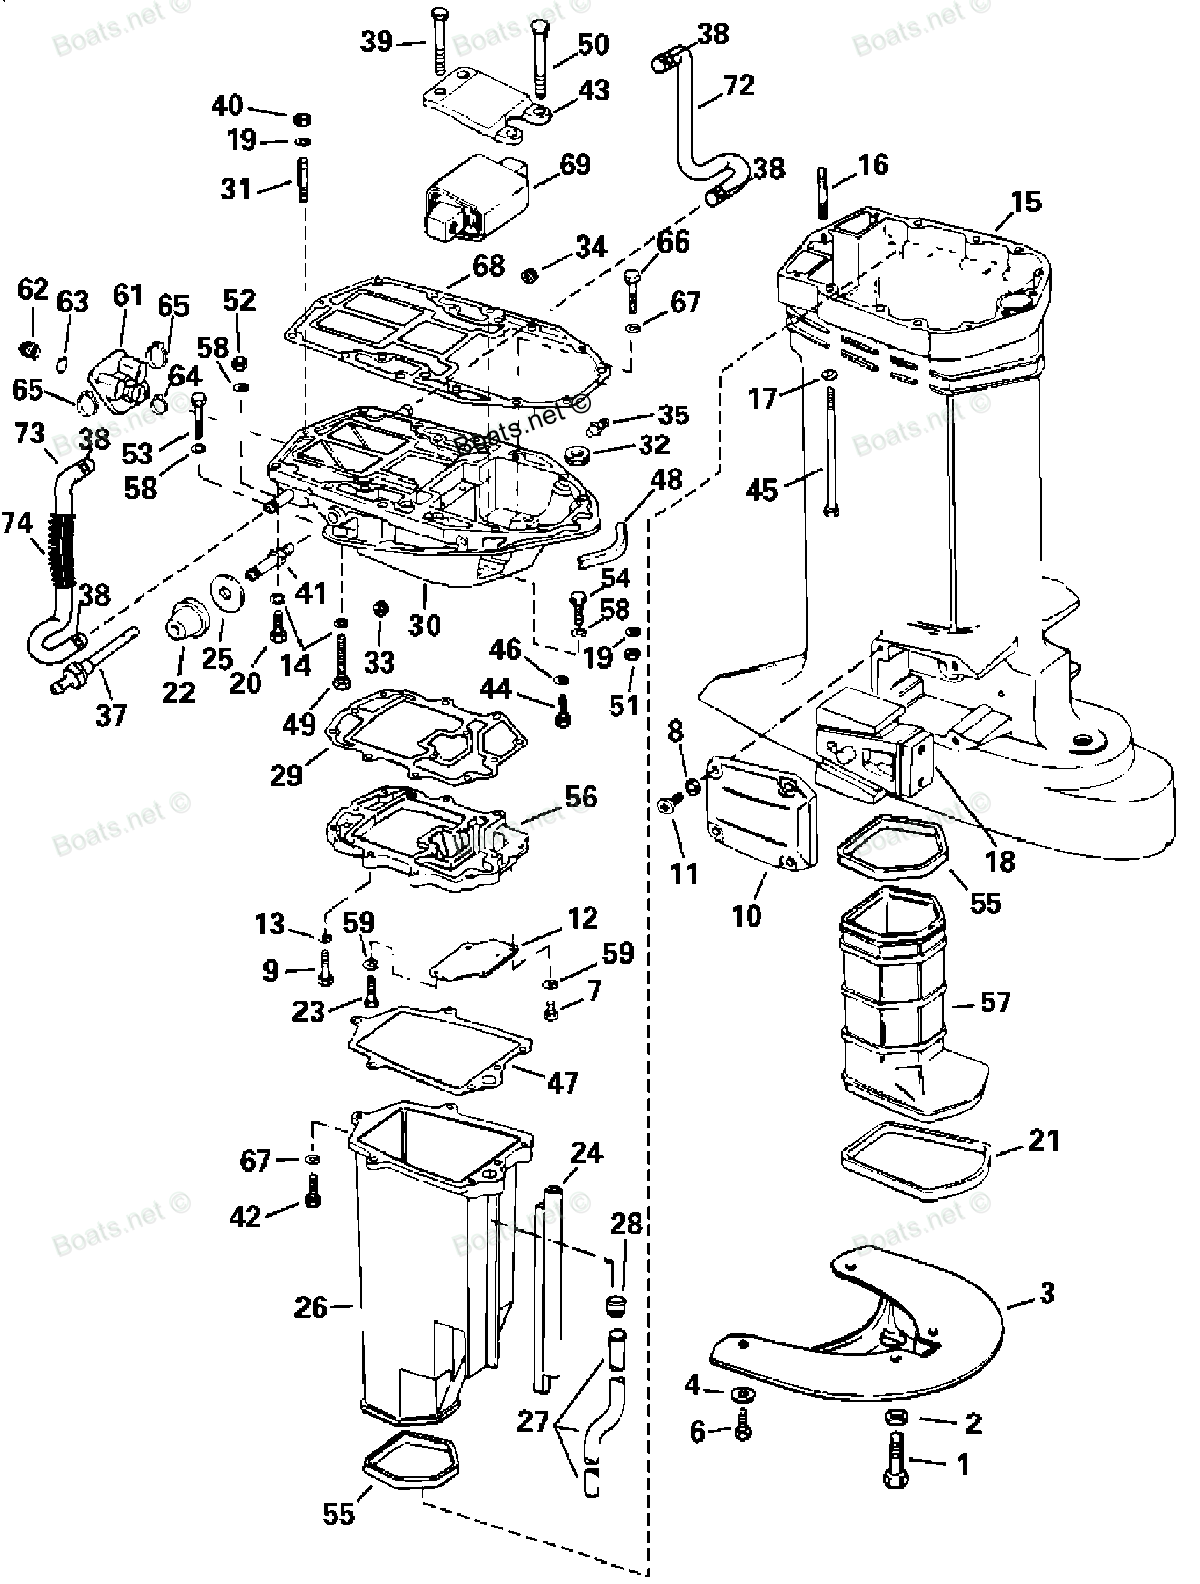 Mercury Outboard Motor Parts Diagram besides Fixforcewiring in addition 7tzj4 Water Leaking Lower Unit Bolts besides Mercury 50 Hp Wiring Diagram further 55 Hp Johnson Outboard Diagram. on 1989 90 hp evinrude